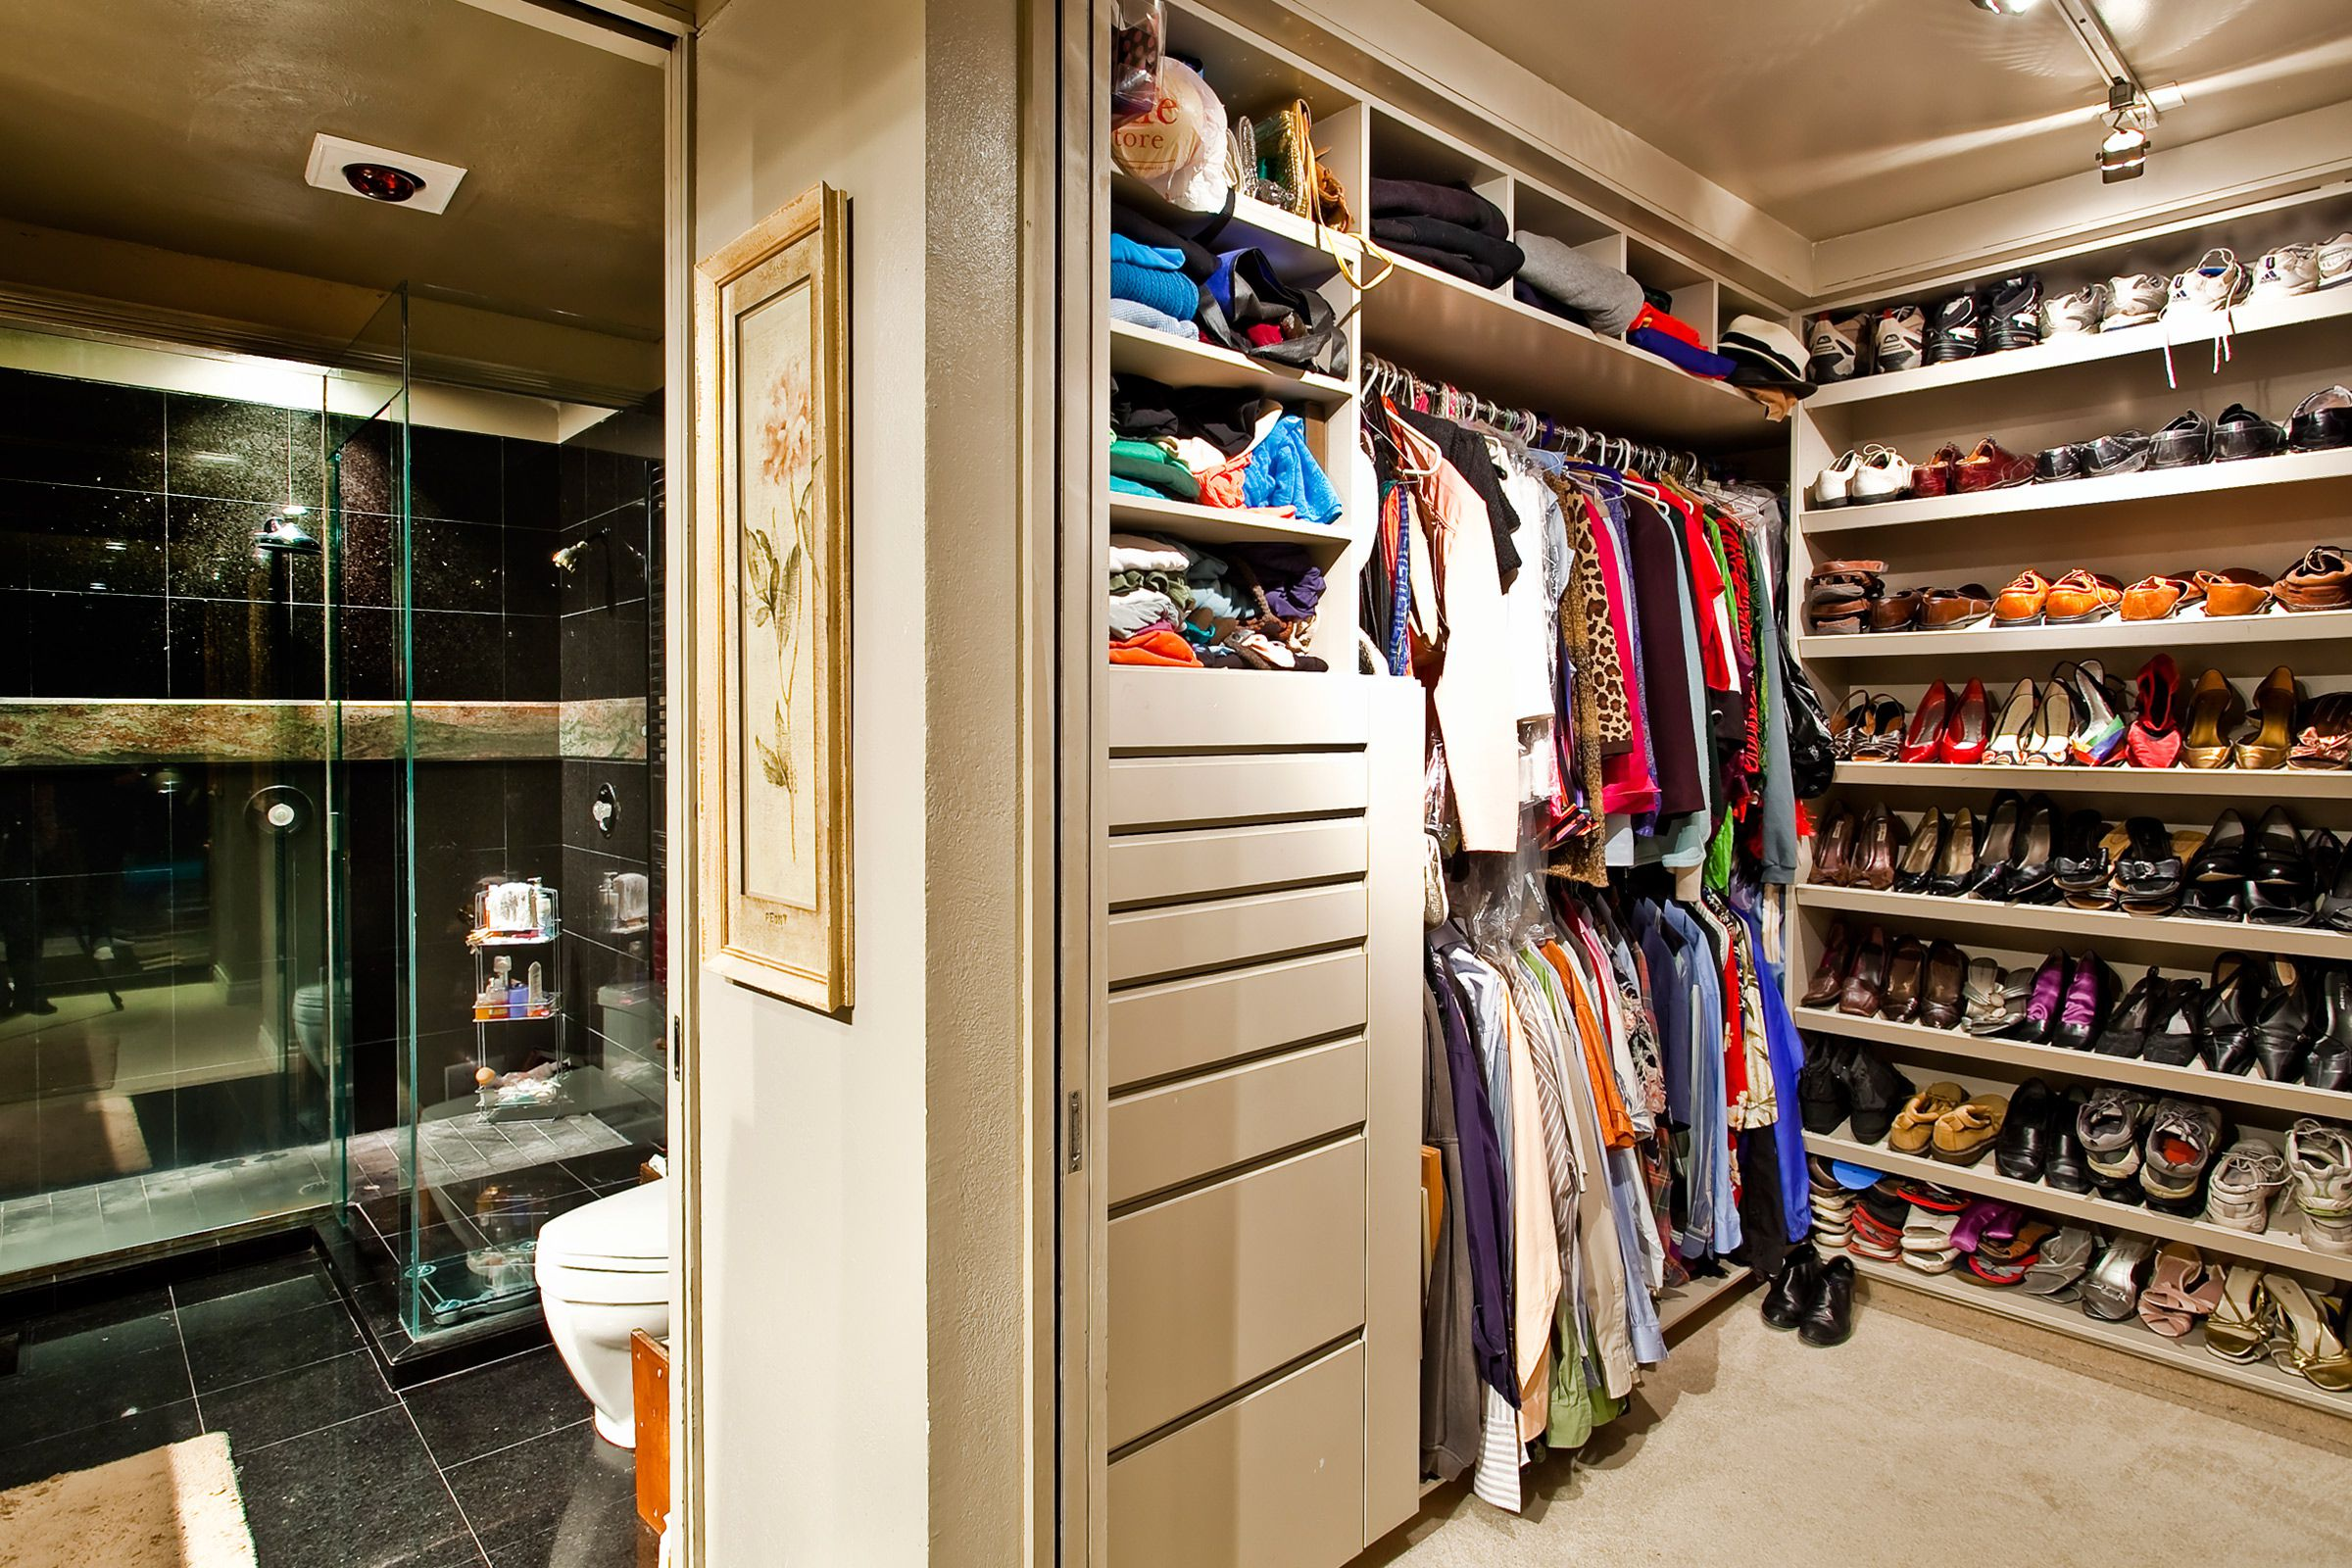 Appealing Shoes Racks also Hanging Clothes To Decorate Small Closet Design Ideas